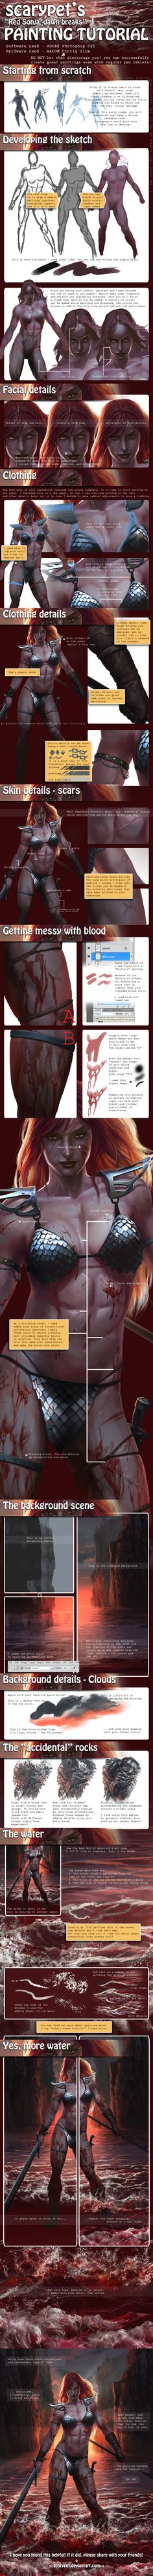 Scarypet's 'Red Sonja' Painting Tutorial by scarypet on DeviantArt